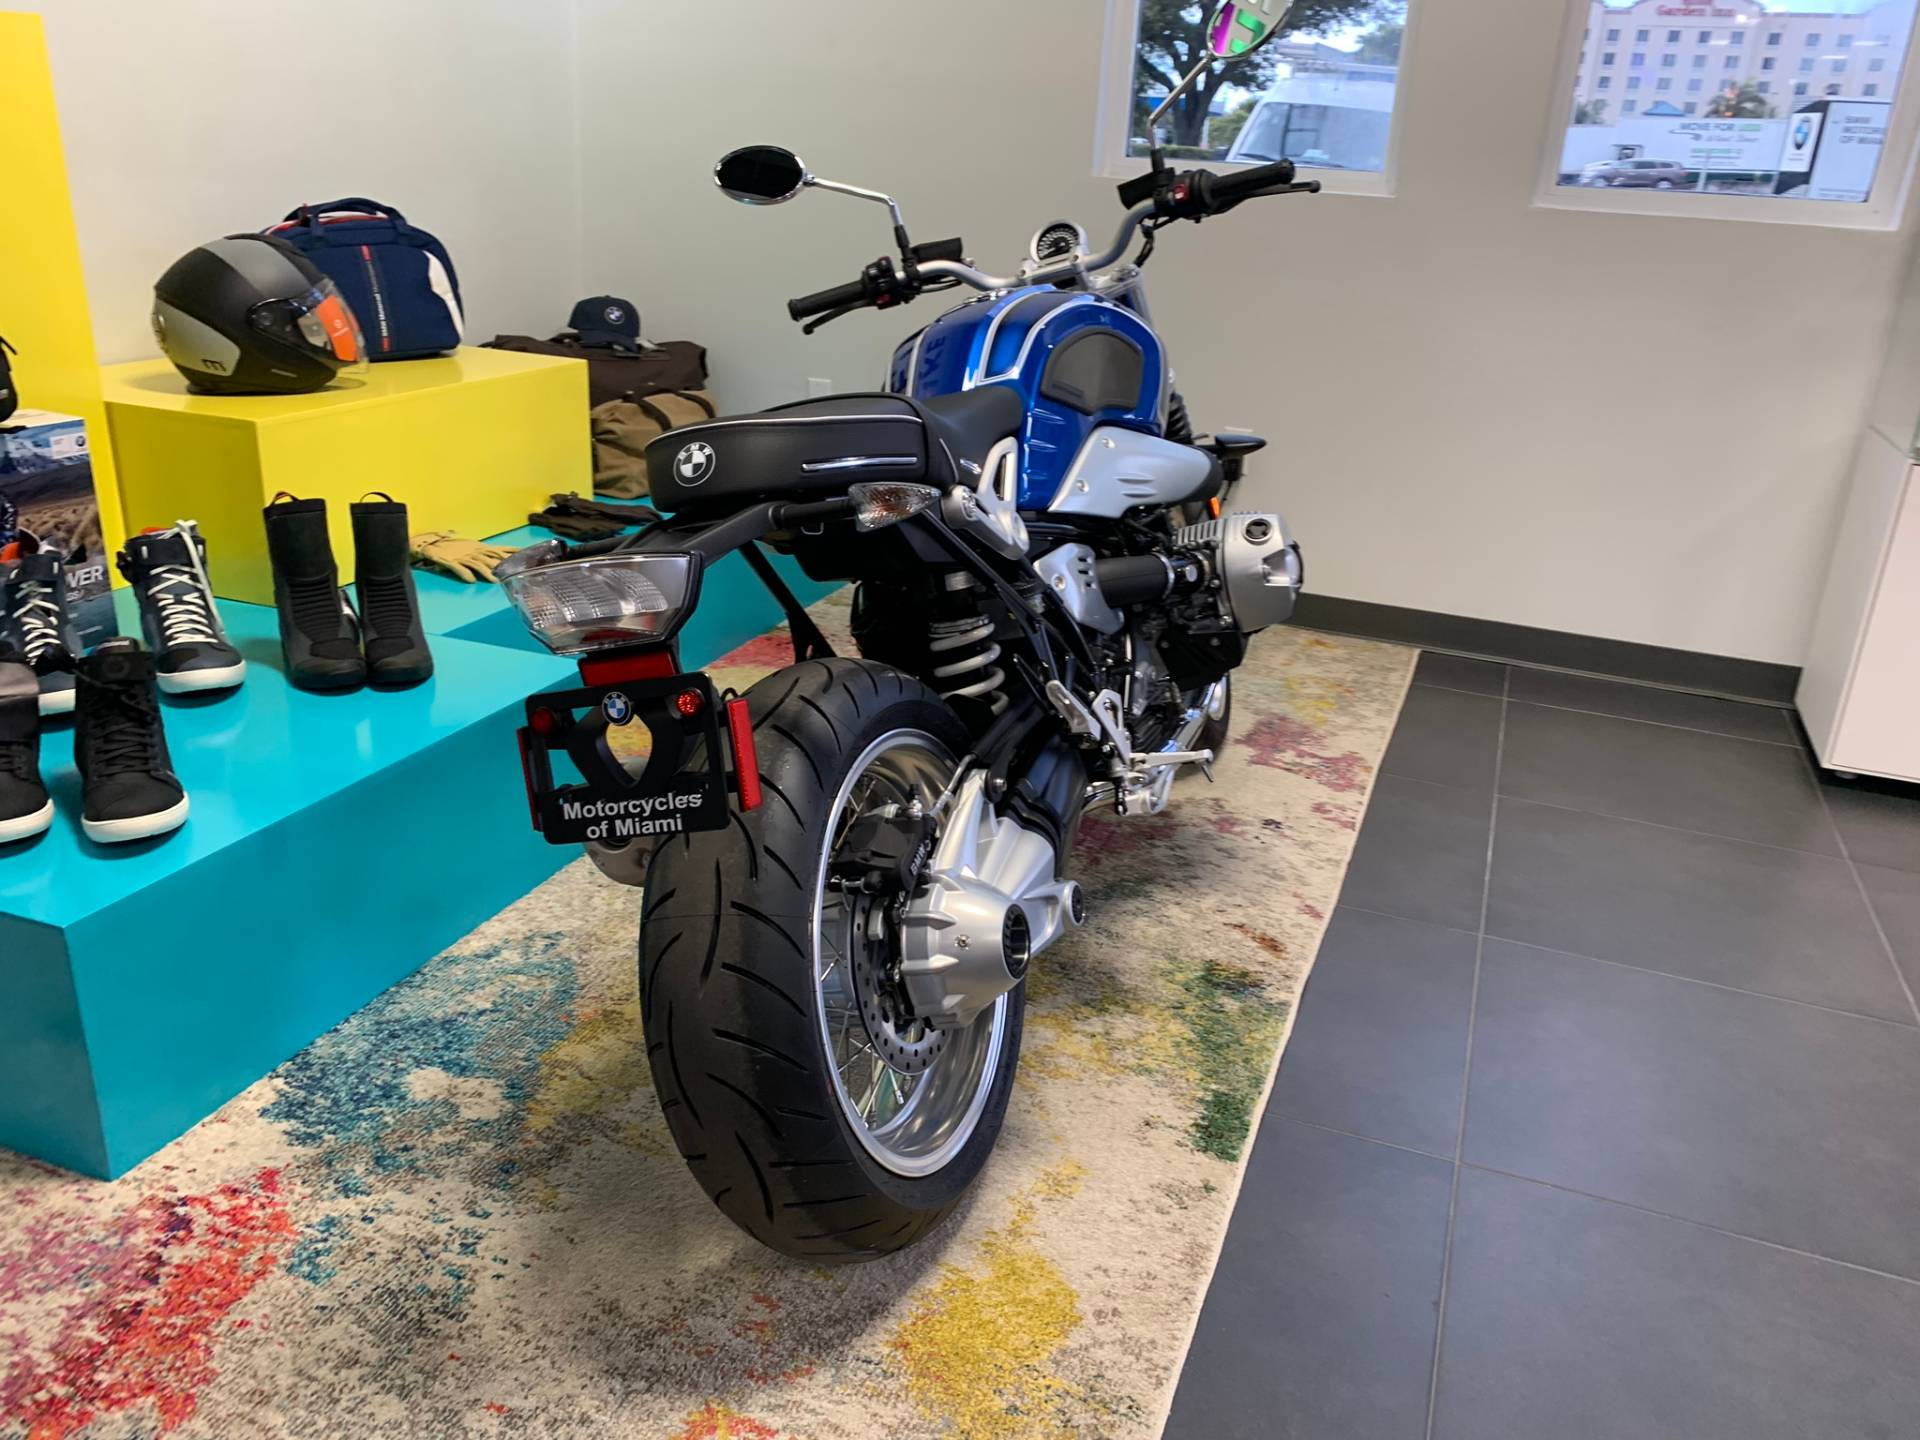 New 2020 2019 BMW R NineT for sale, BMW for sale, BMW Motorcycle Café Racer, new BMW Caffe, Cafe Racer, BMW. BMW Motorcycles of Miami, Motorcycles of Miami, Motorcycles Miami, New Motorcycles, Used Motorcycles, pre-owned. #BMWMotorcyclesOfMiami #MotorcyclesOfMiami. - Photo 12